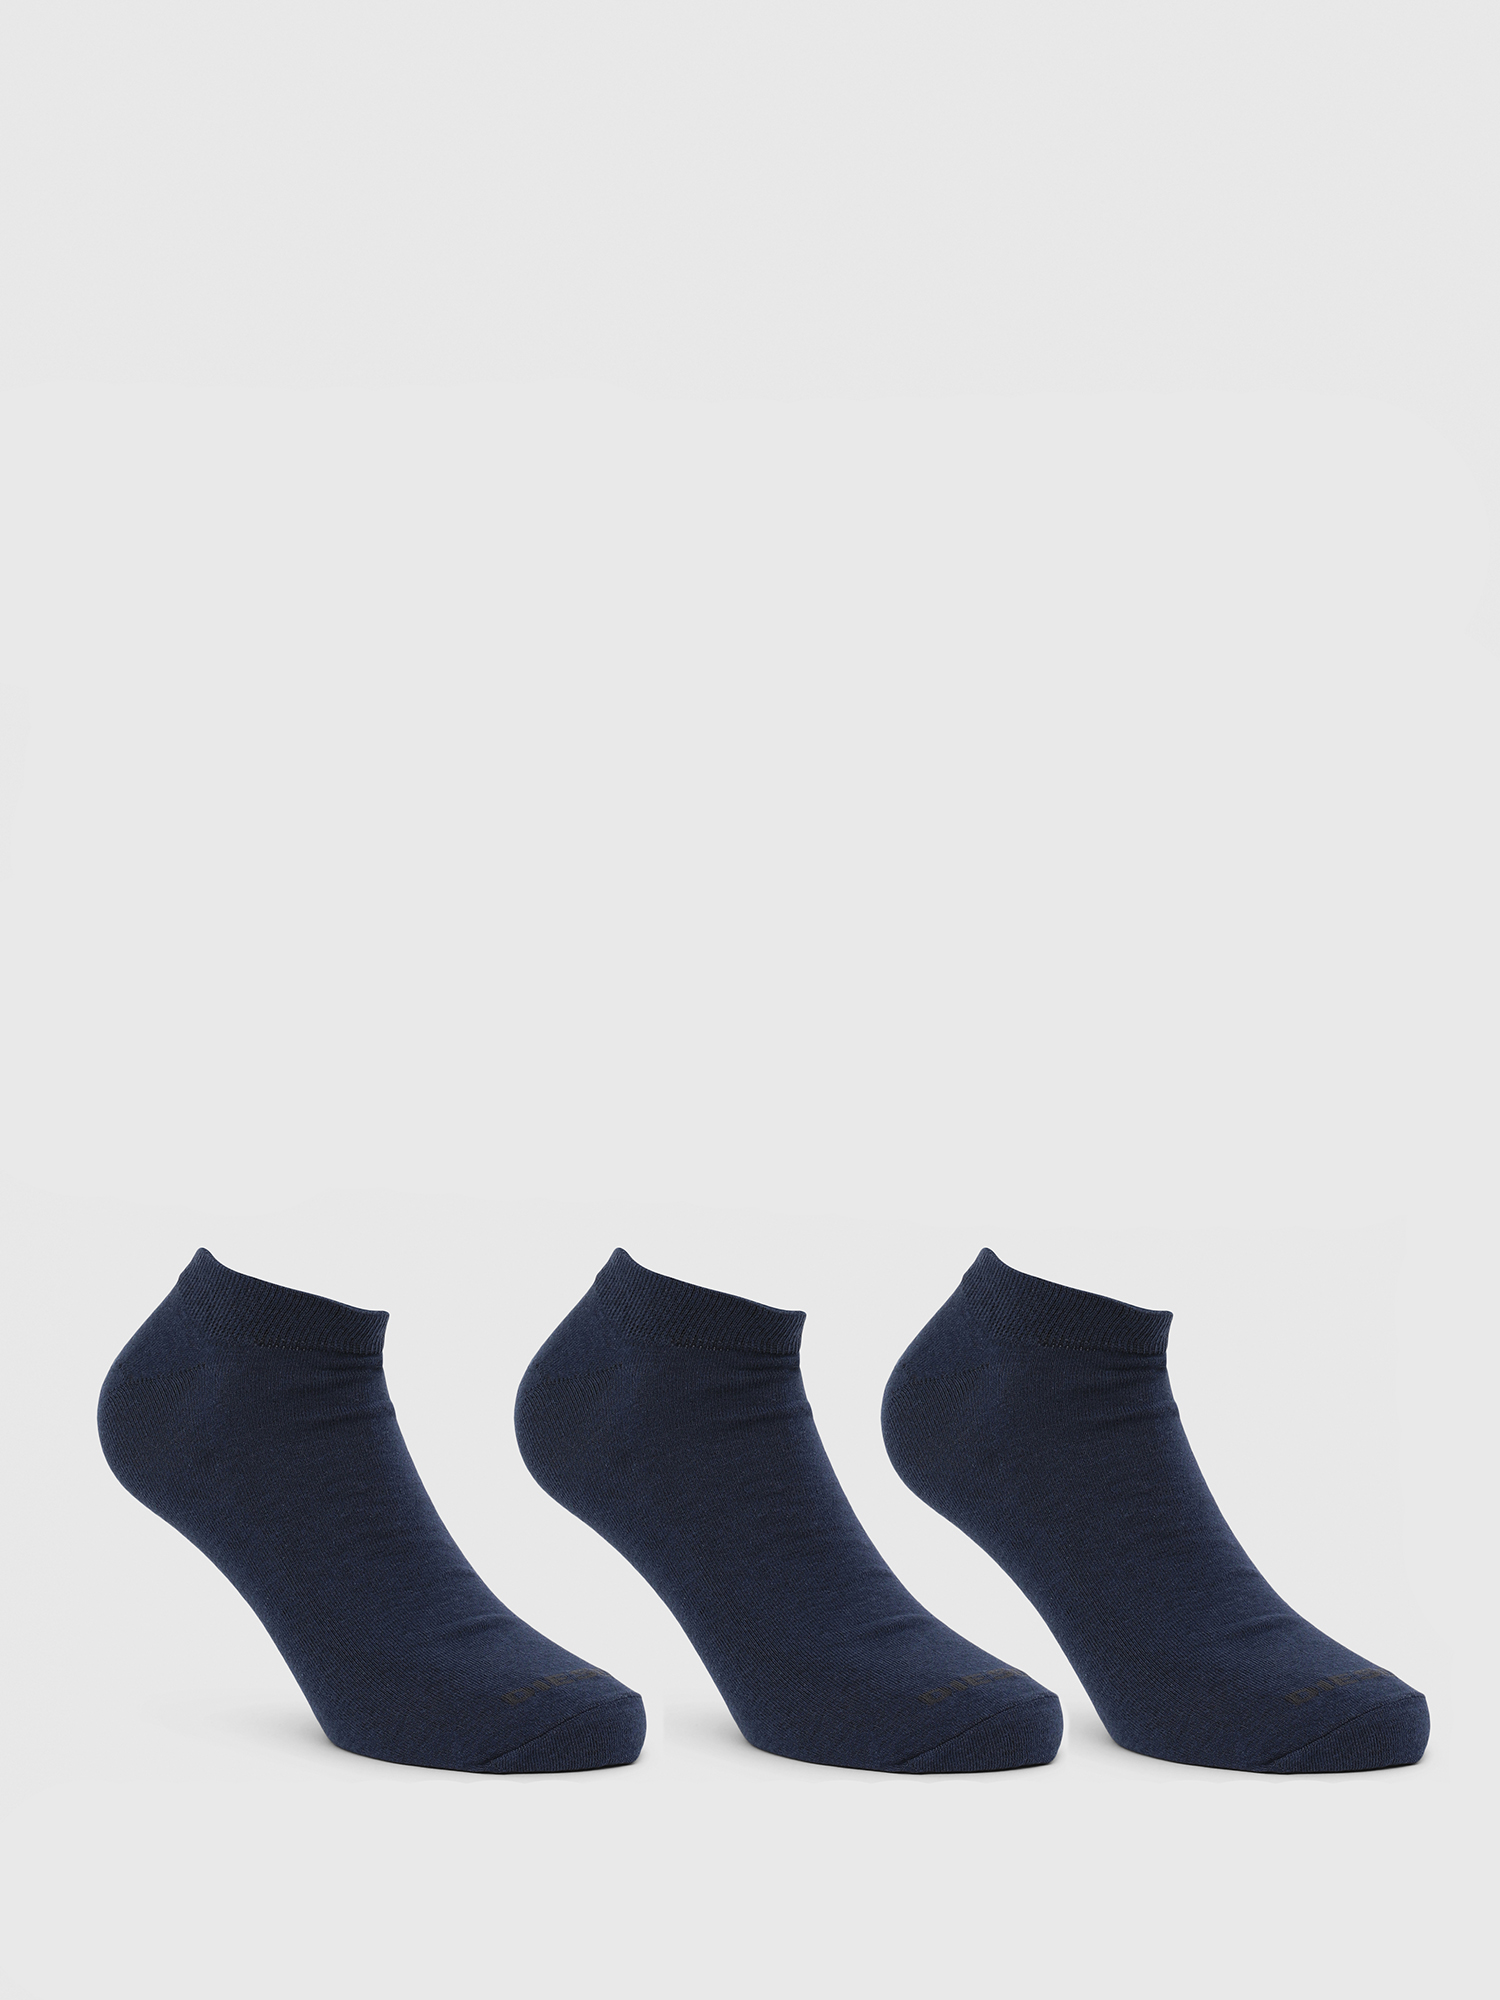 Diesel - SKM-GOST-THREEPACK,  - Low-cut socks - Image 1